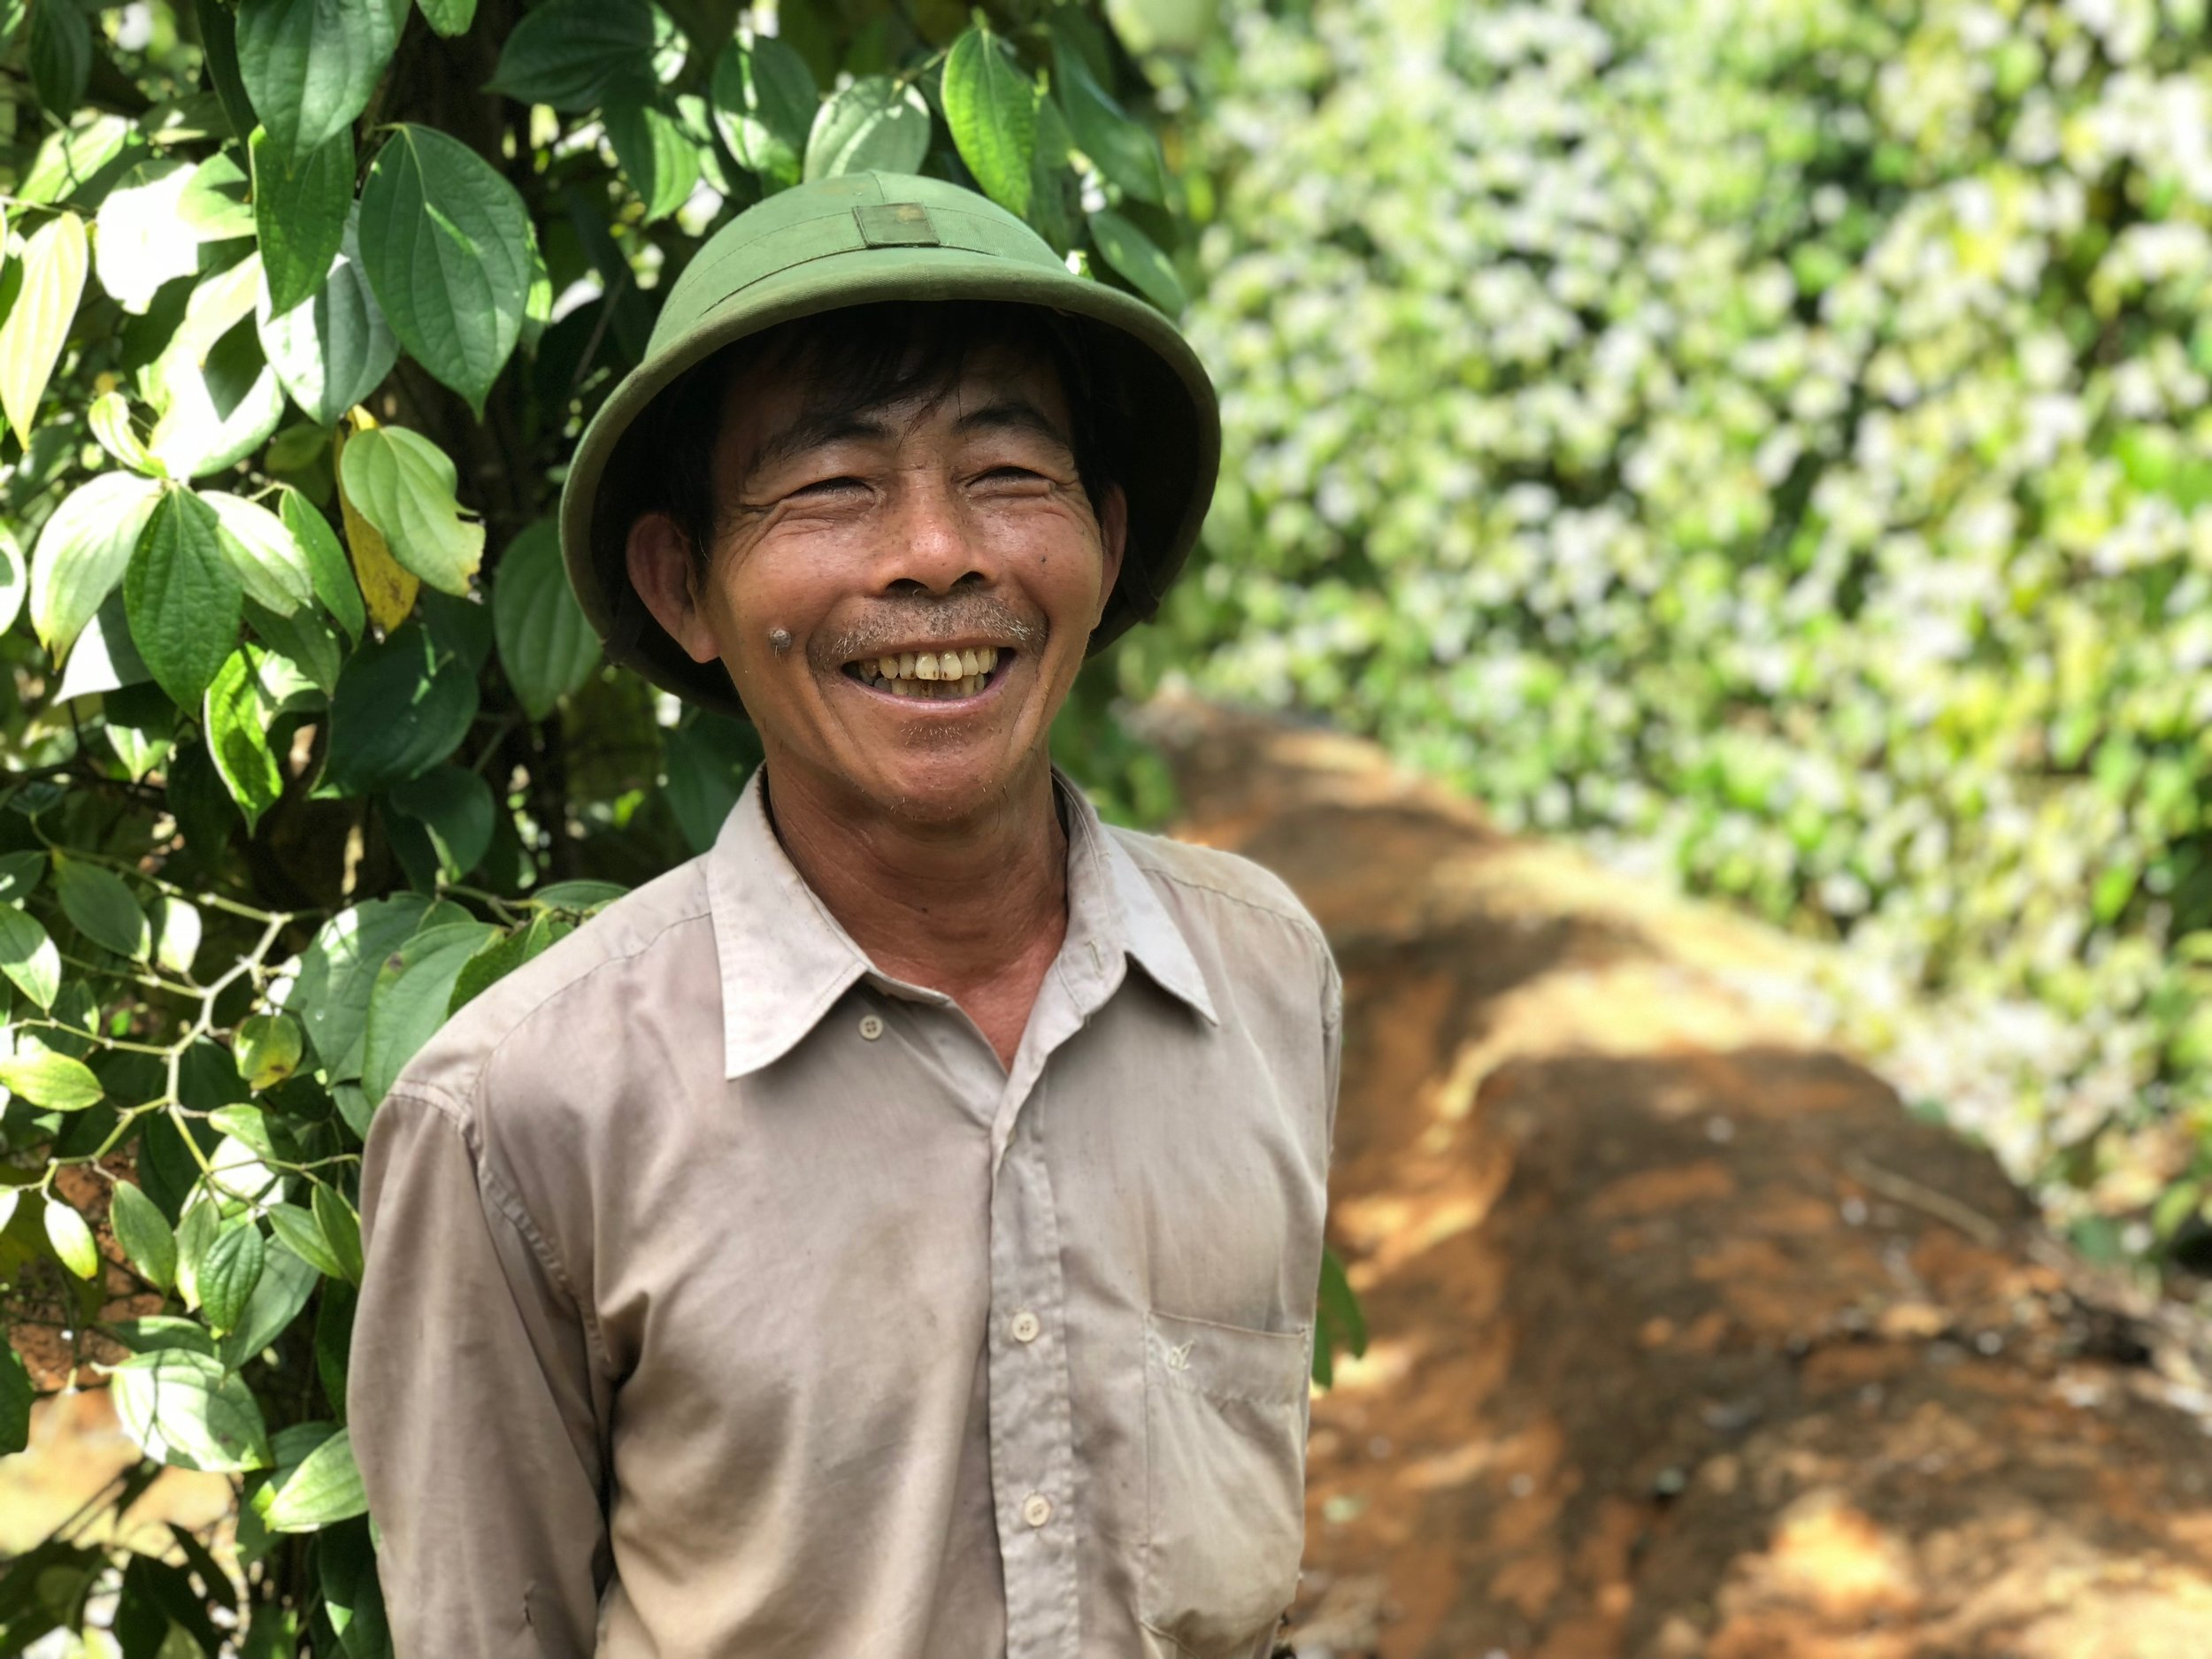 Roots-of-Peace-ROP-agriculture-Vietnam-farmer-black-pepper-smile.jpg